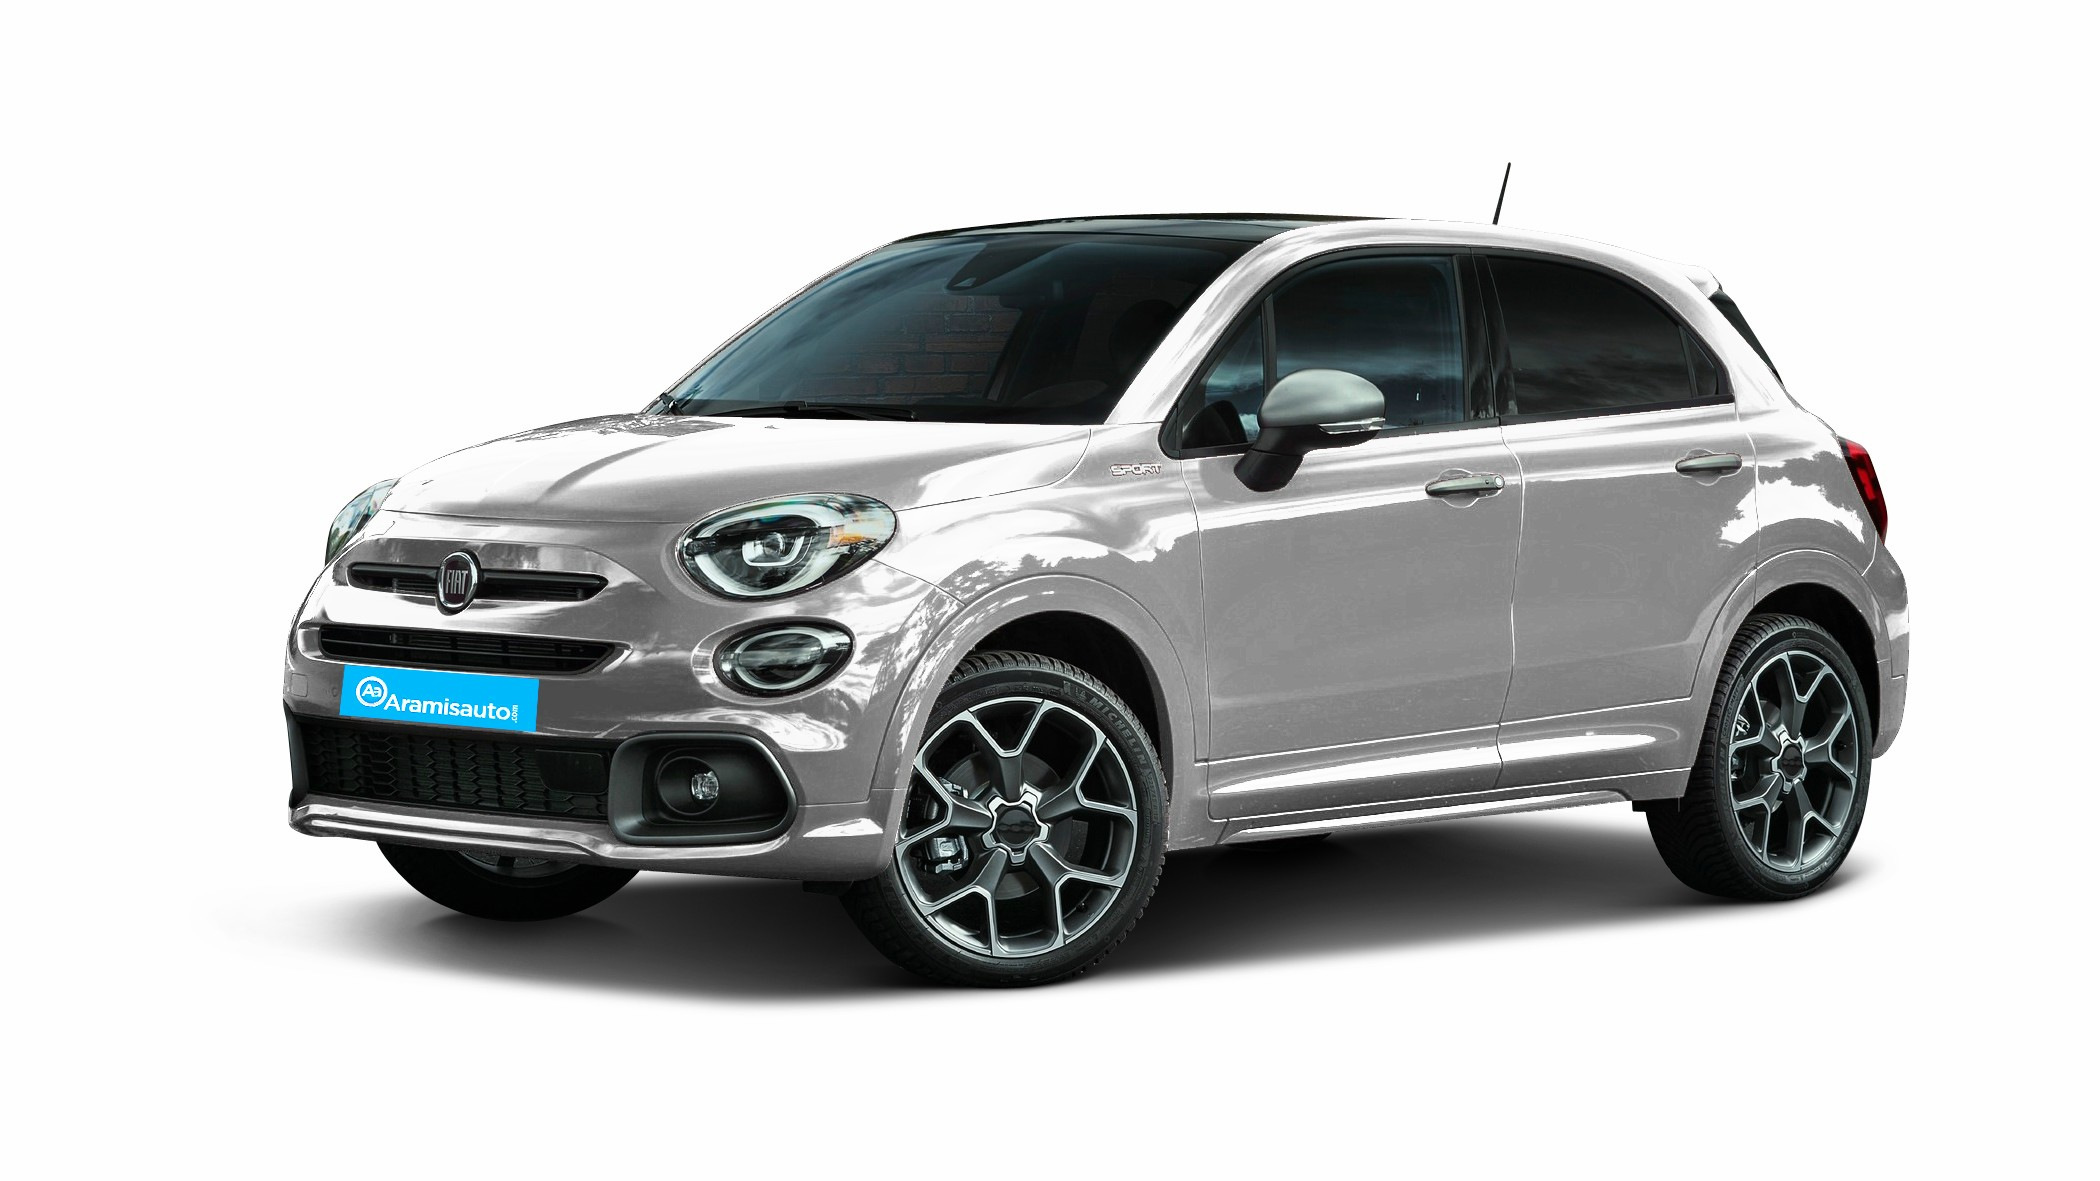 fiat 500x 4x2 et suv 5 portes essence 1 4 140 auto. Black Bedroom Furniture Sets. Home Design Ideas